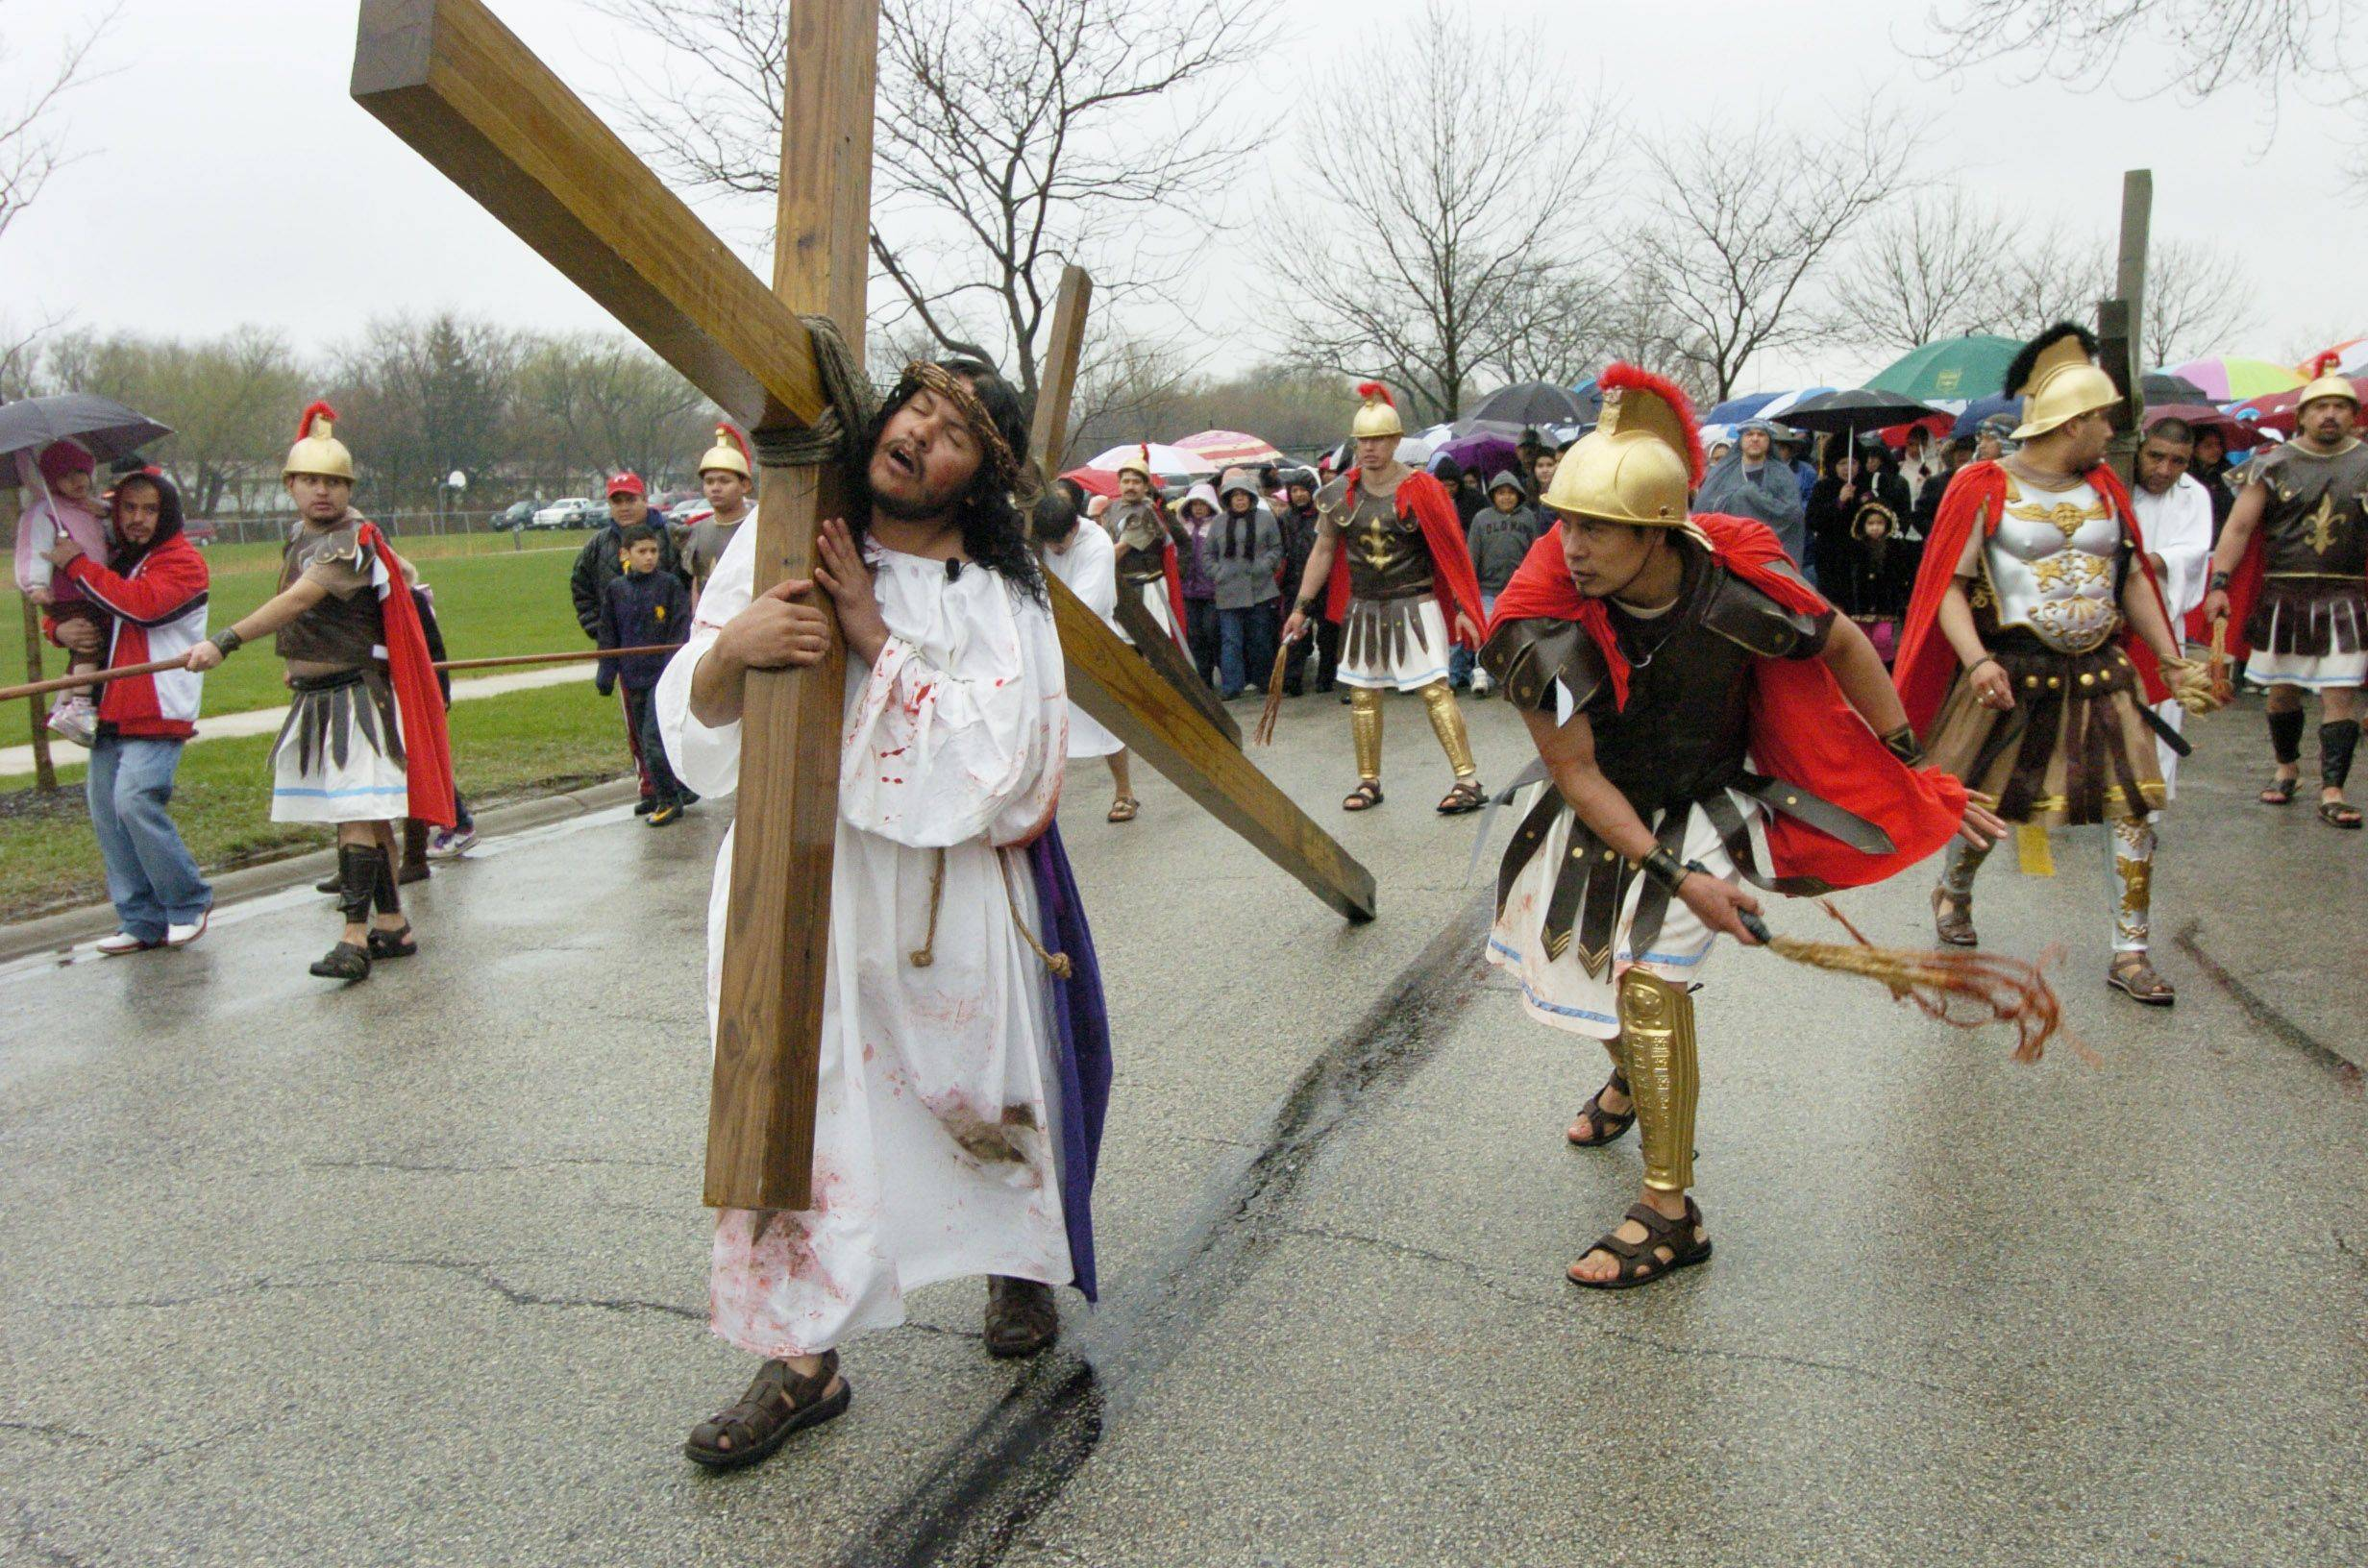 Jesus is whipped as he carries his cross during a Good Friday procession from St. Thomas Church in Palatine to Mission San Juan Diego in Arlington Heights.